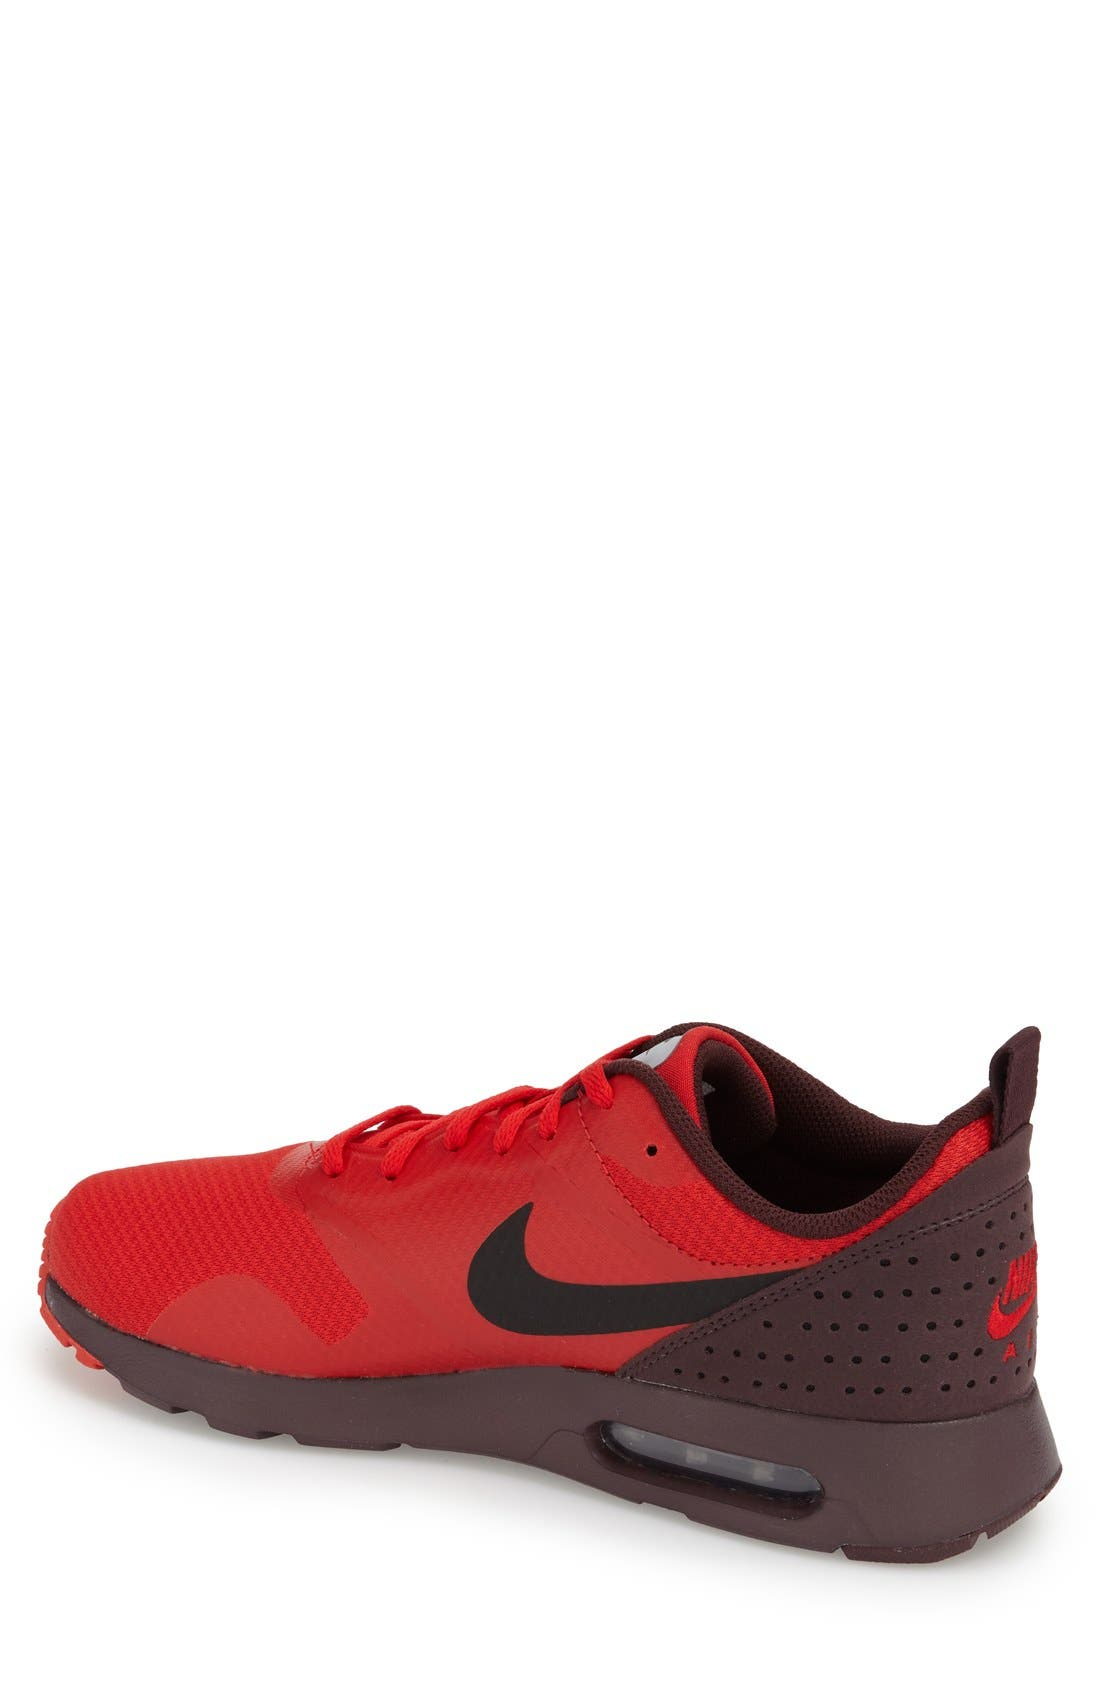 ,                             'Air Max Tavas' Sneaker,                             Alternate thumbnail 190, color,                             601